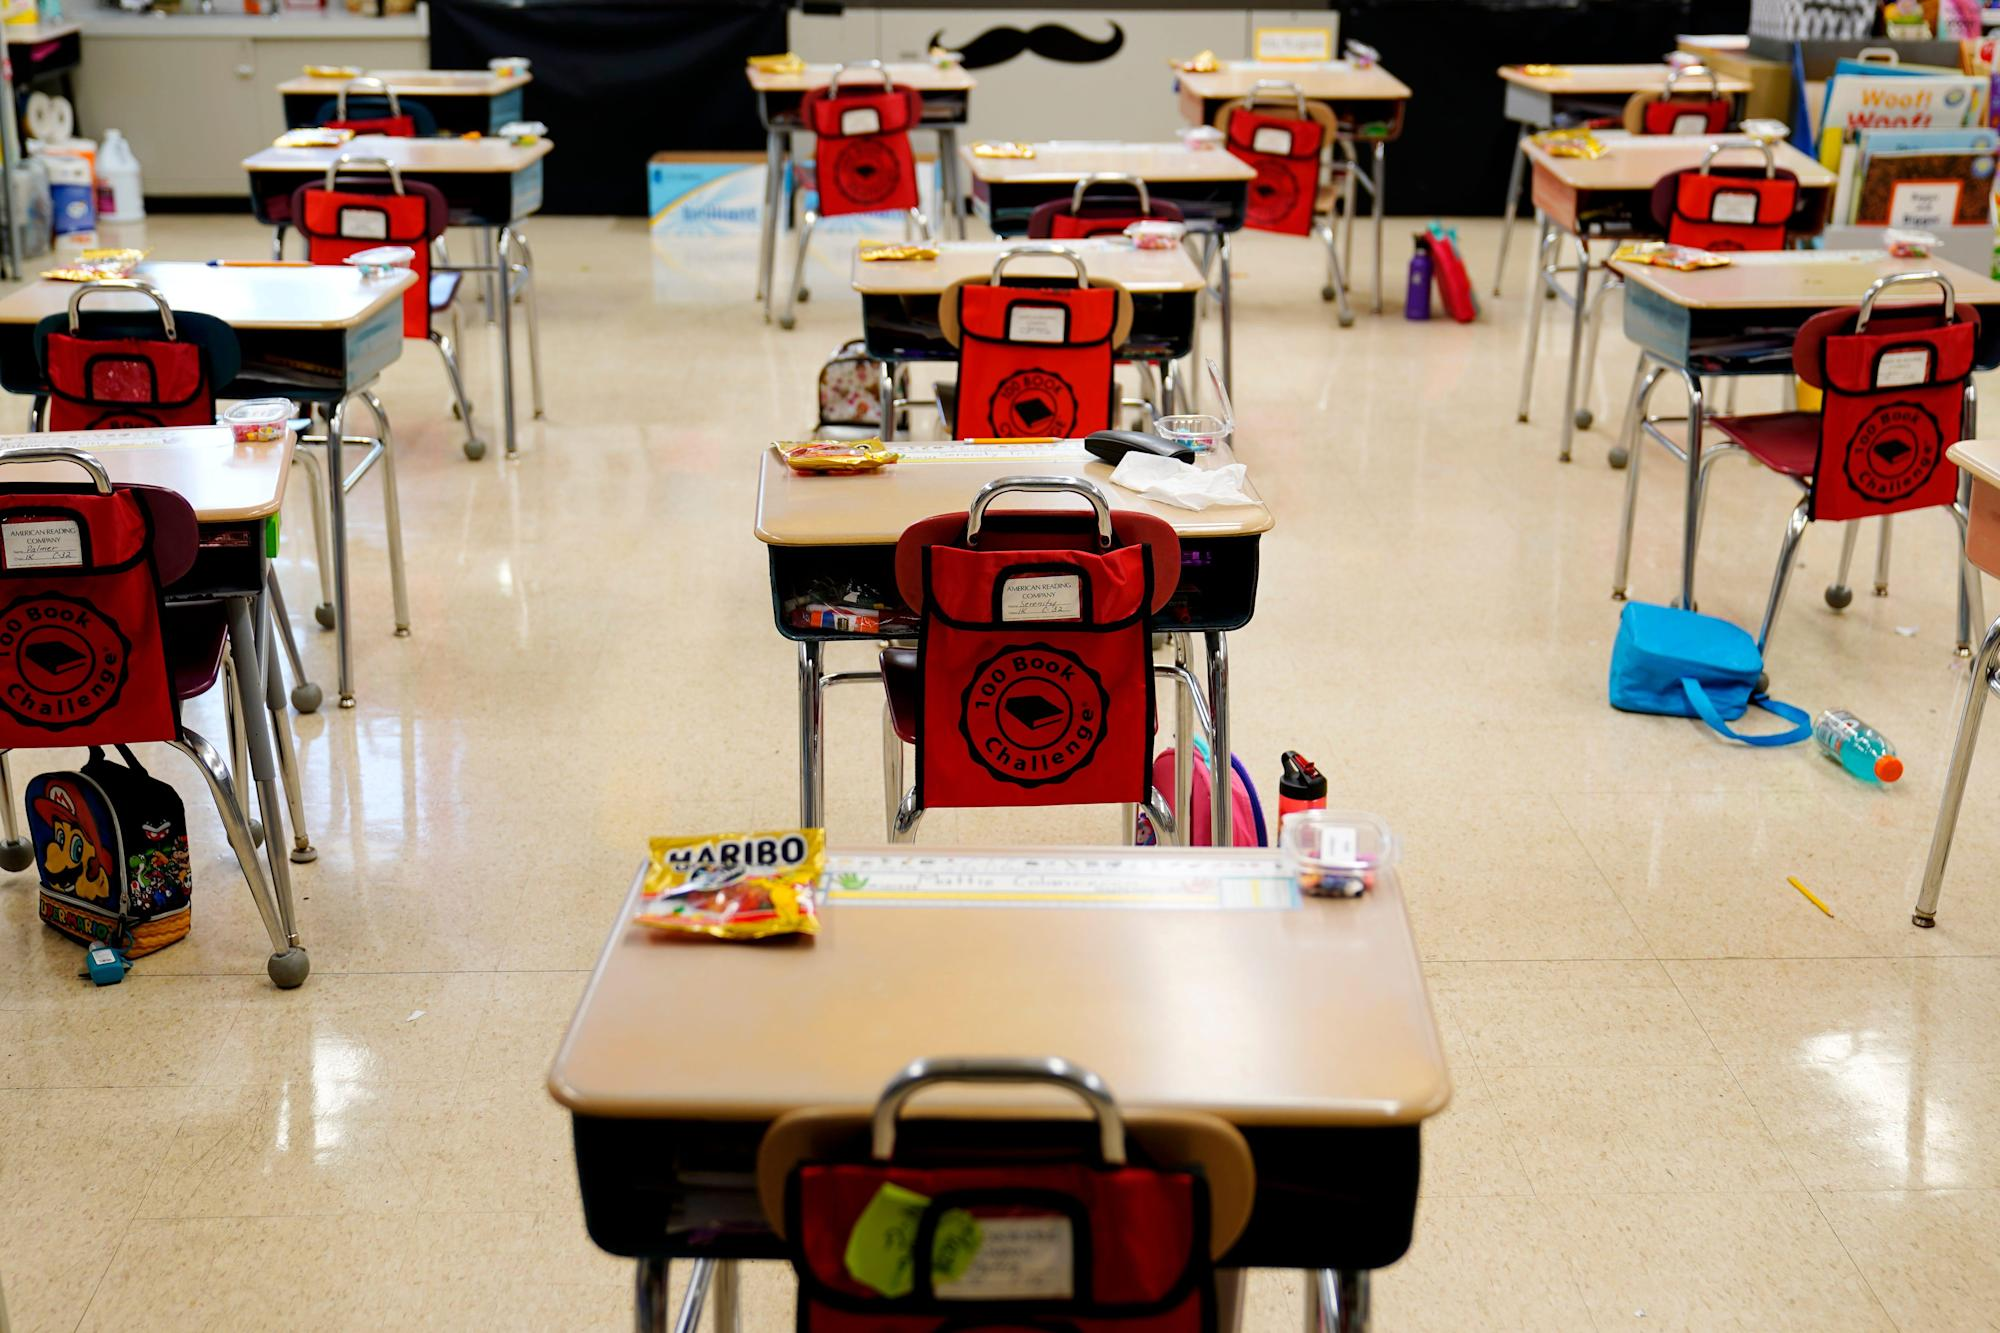 Vaccinated teachers, students don't need masks inside school buildings, CDC says: Live COVID-19 updates